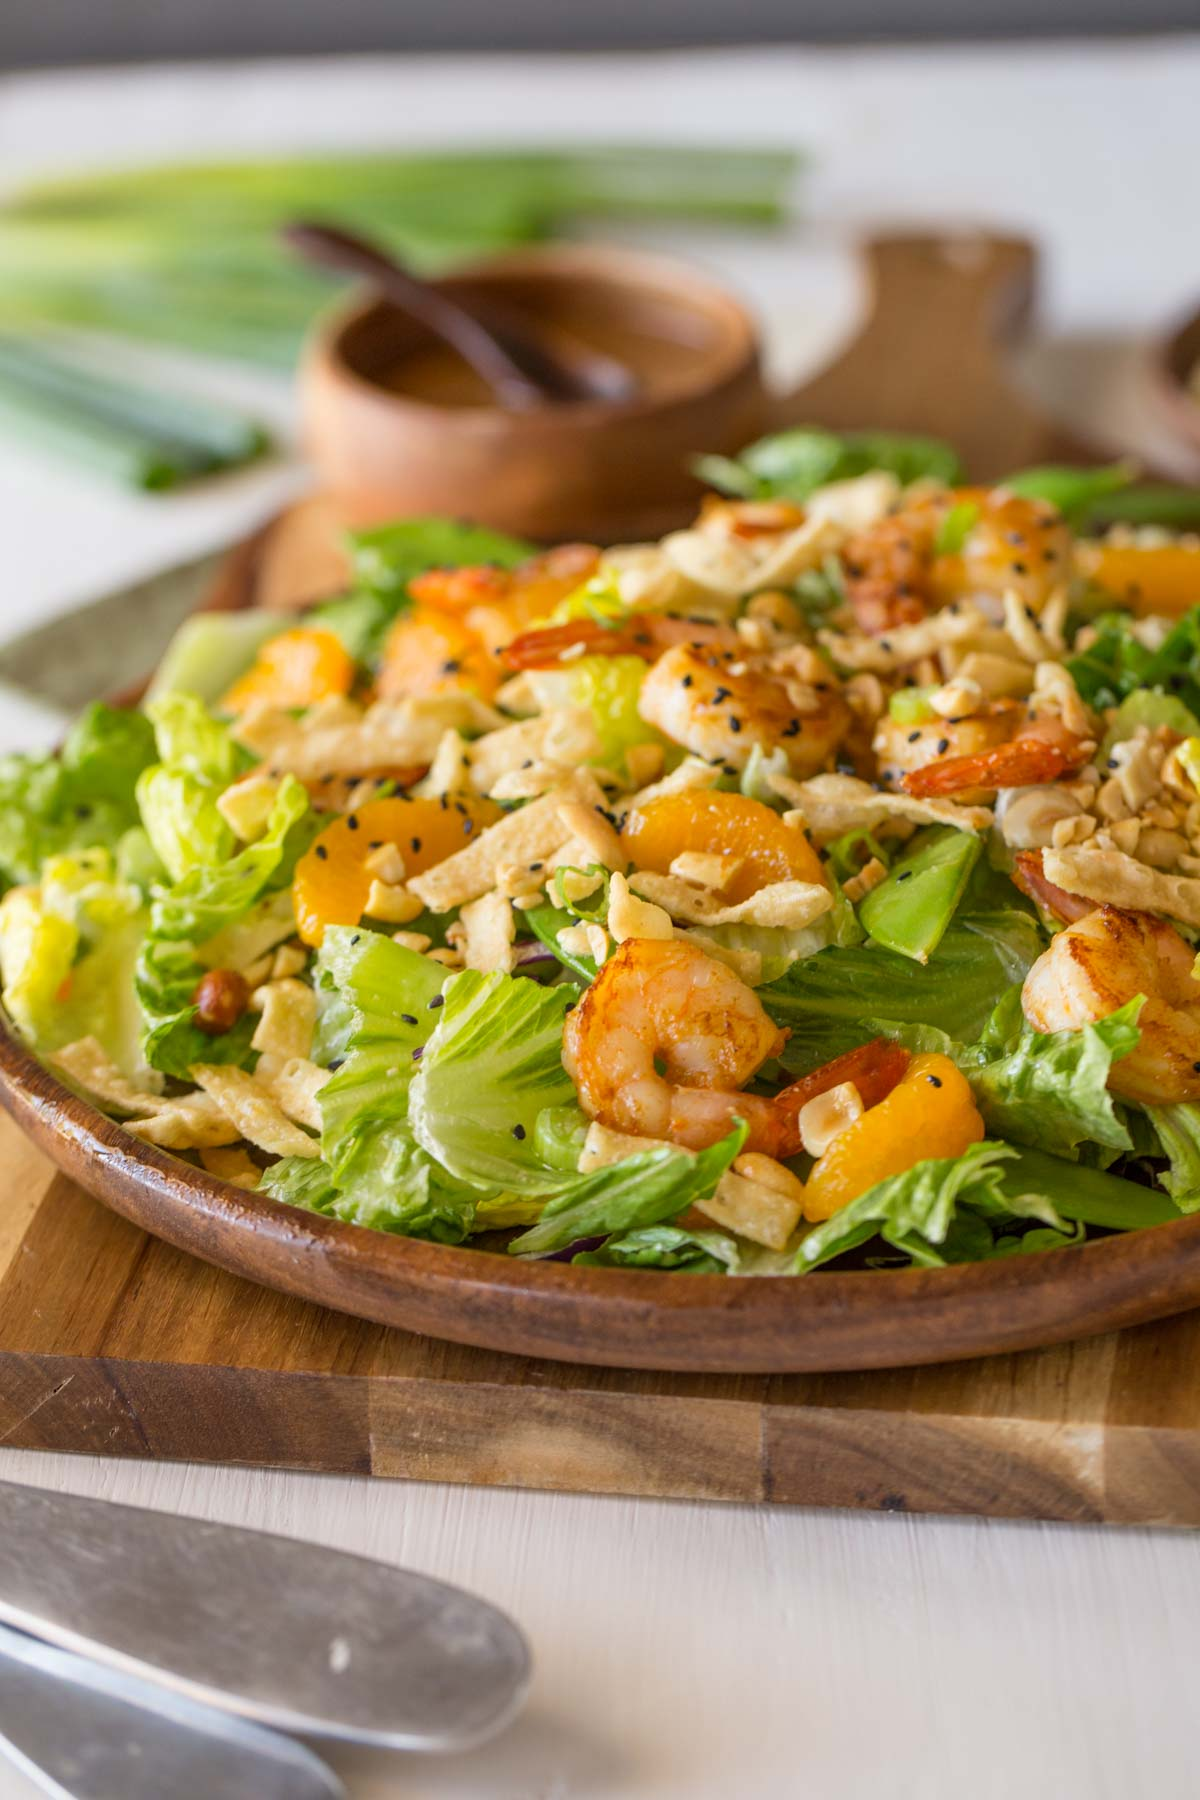 Shrimp Salad on a large serving plate, with a small wood bowl of the Spicy Peanut Dressing in the background.